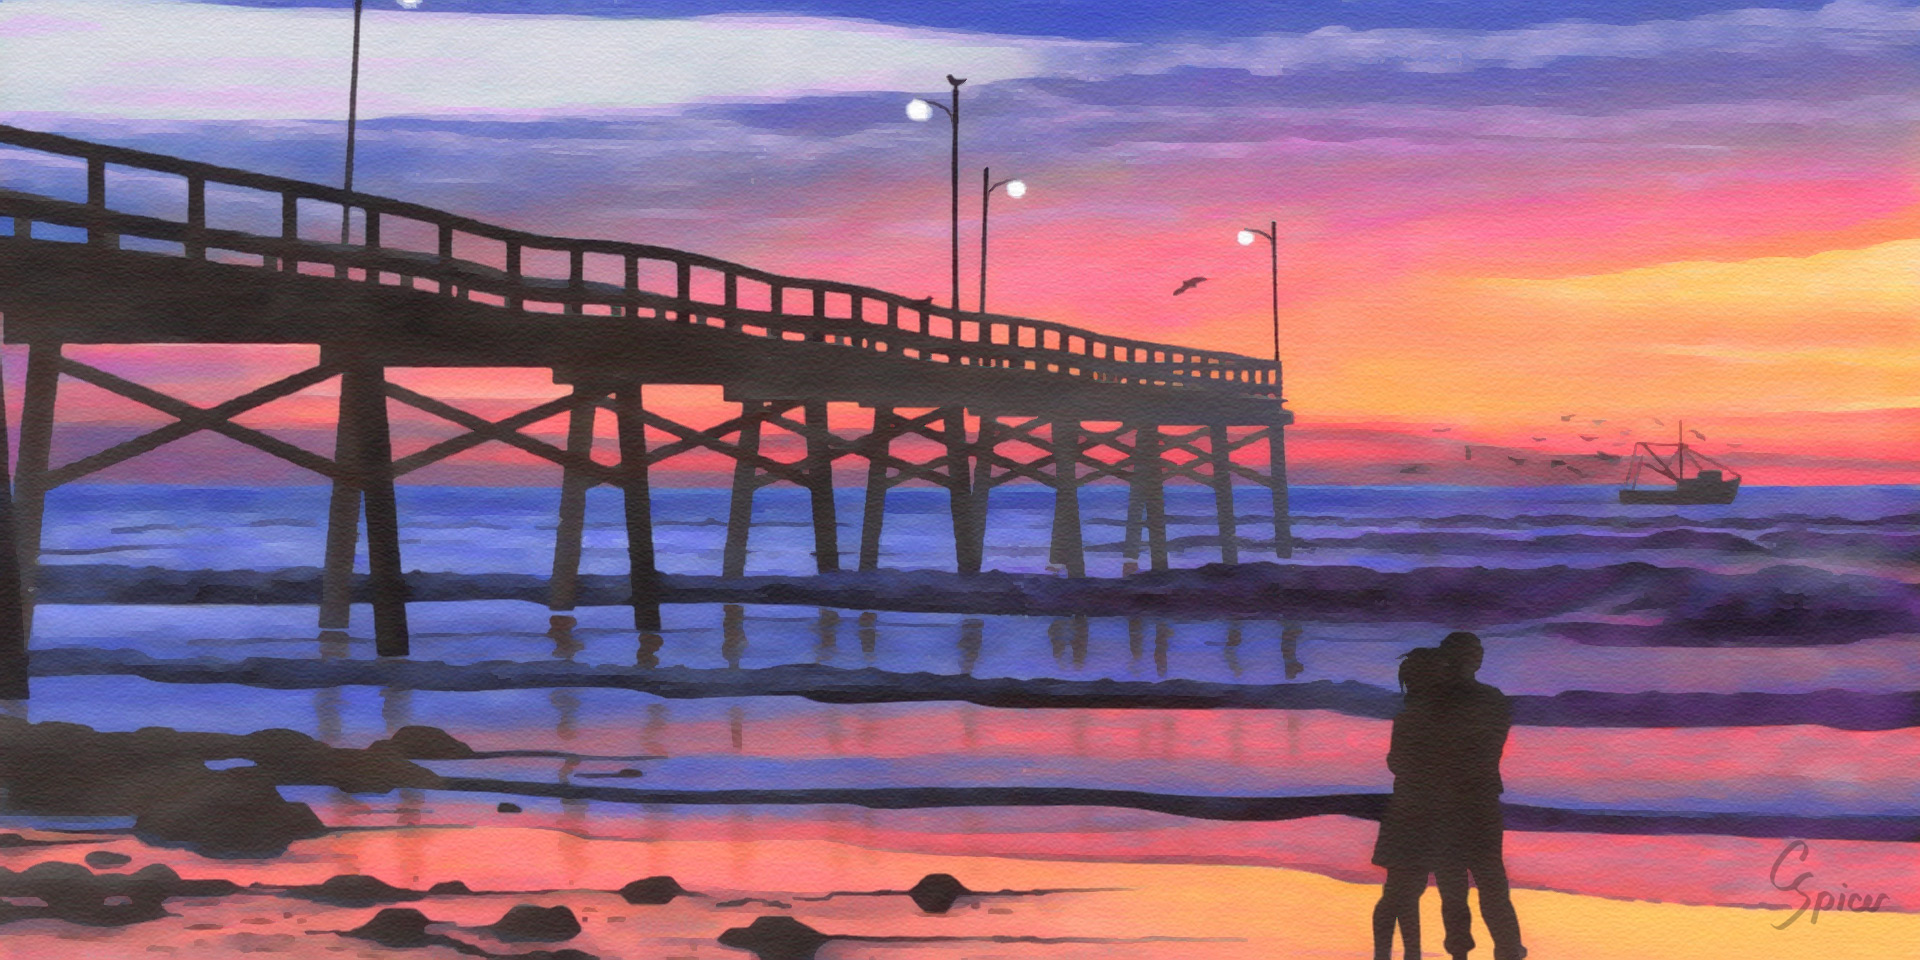 Dusk at the Pier: Acrylic Painting by Christopher Spicer - After a romantic walk on a secluded beach, two lovers embrace next to a fishing pier as the sun sets into a vibrant sky.